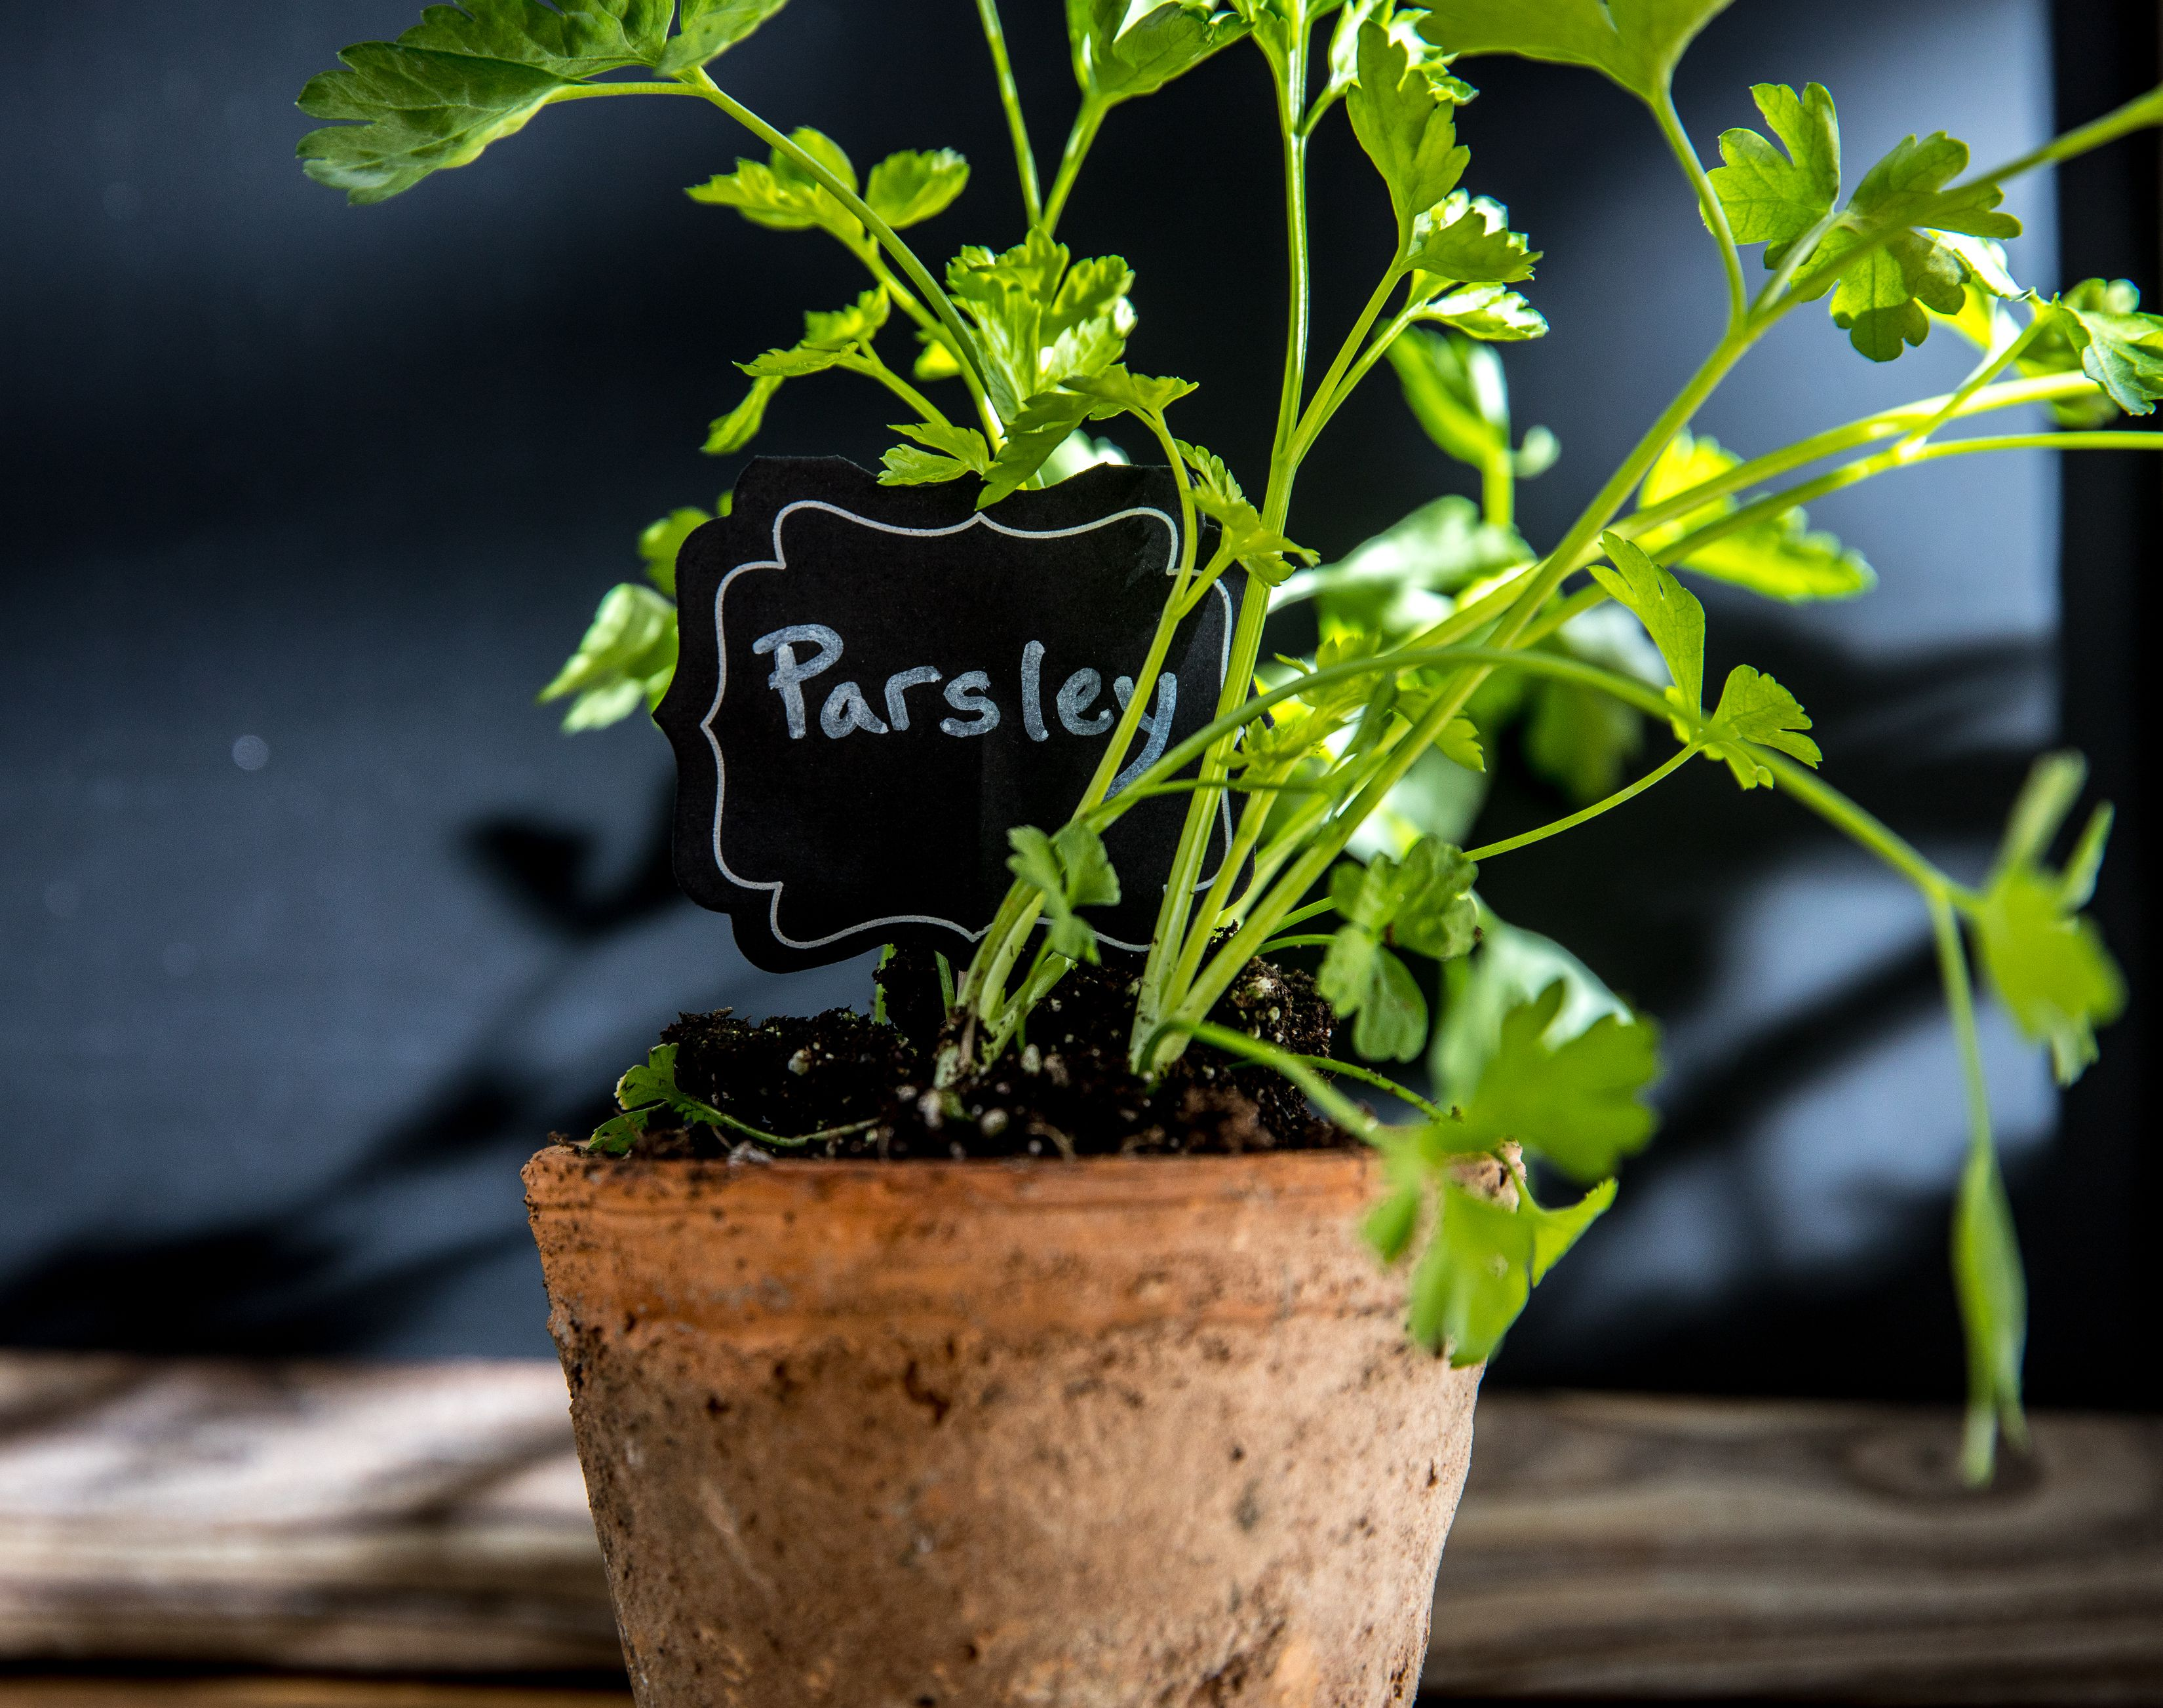 Parsley in a pot with a sign